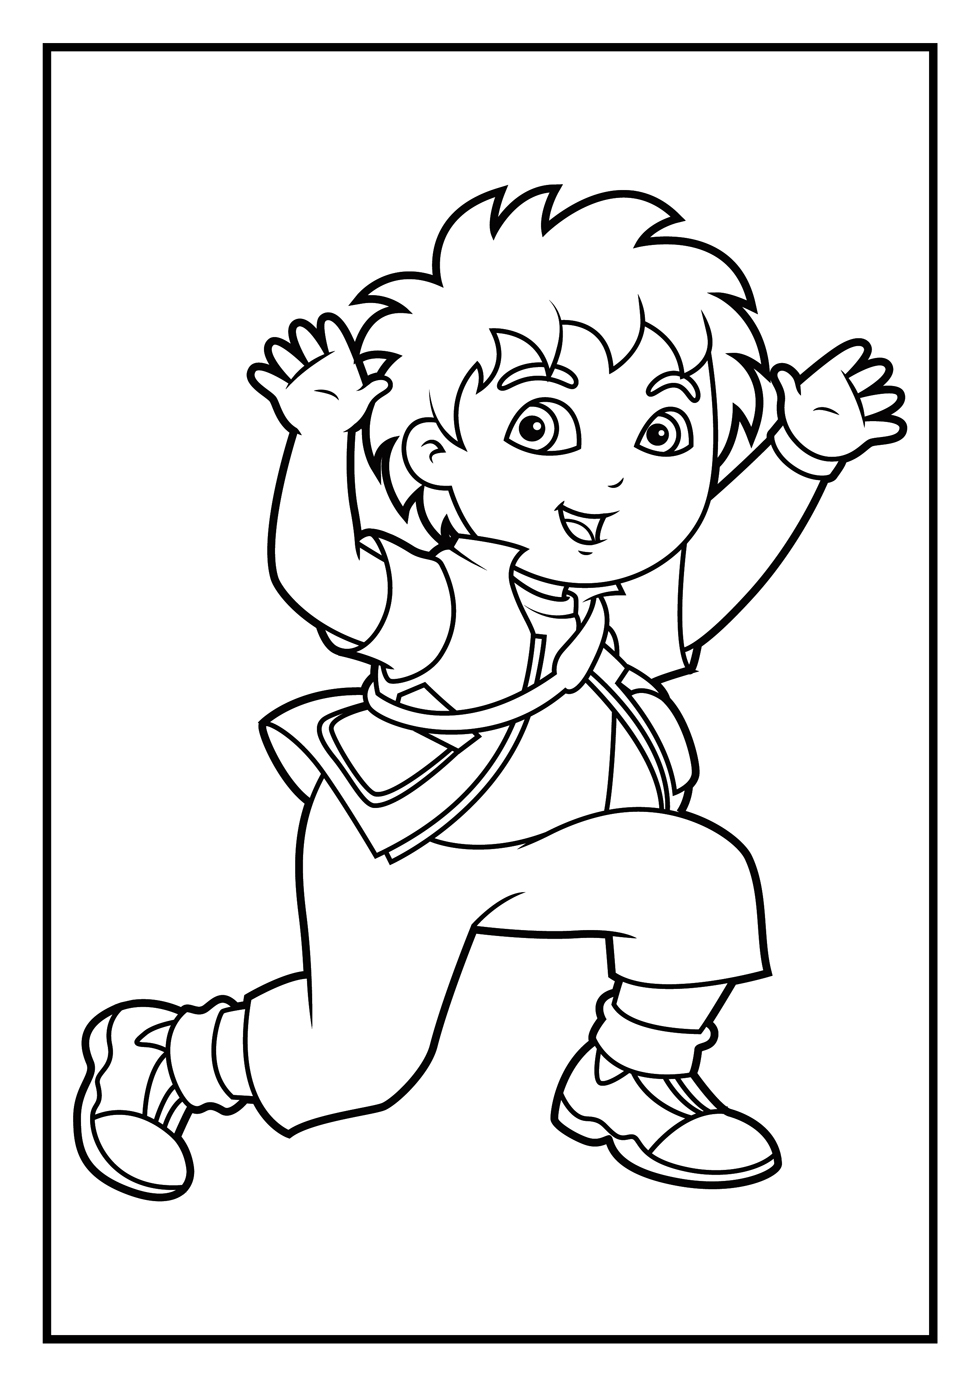 deigo coloring pages - photo#1